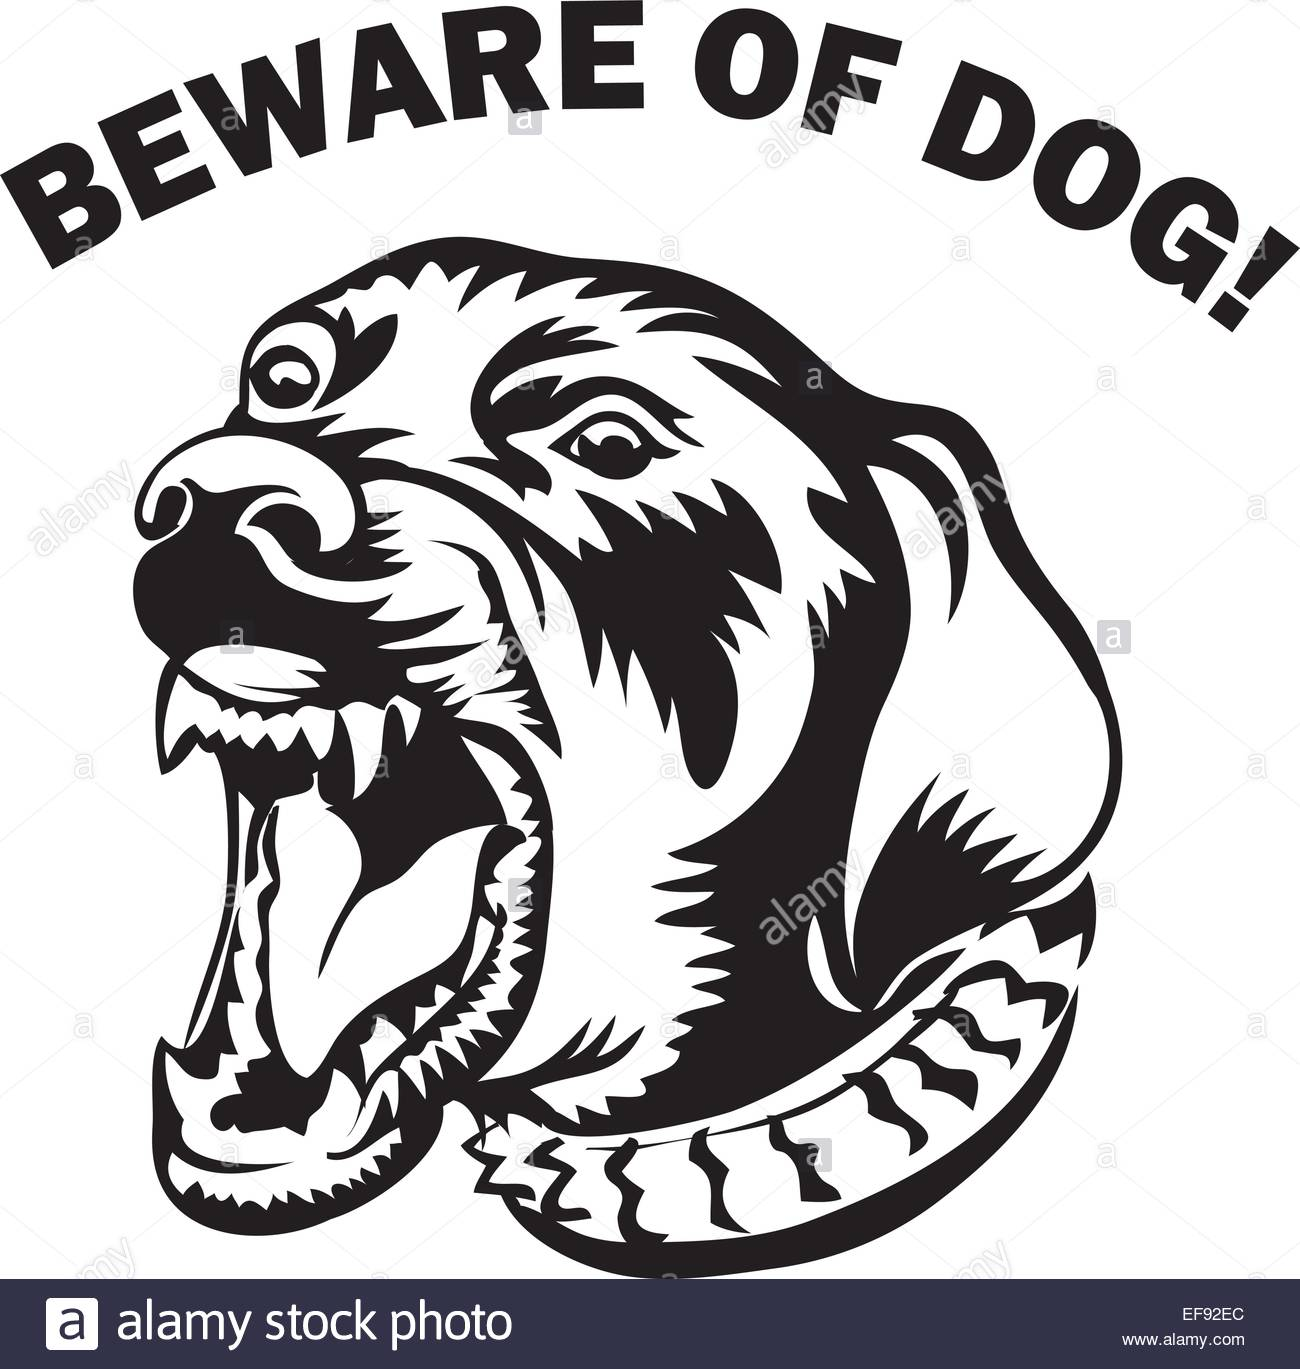 A dog's face that above reads Beware of Dog! Stock Vector Art.